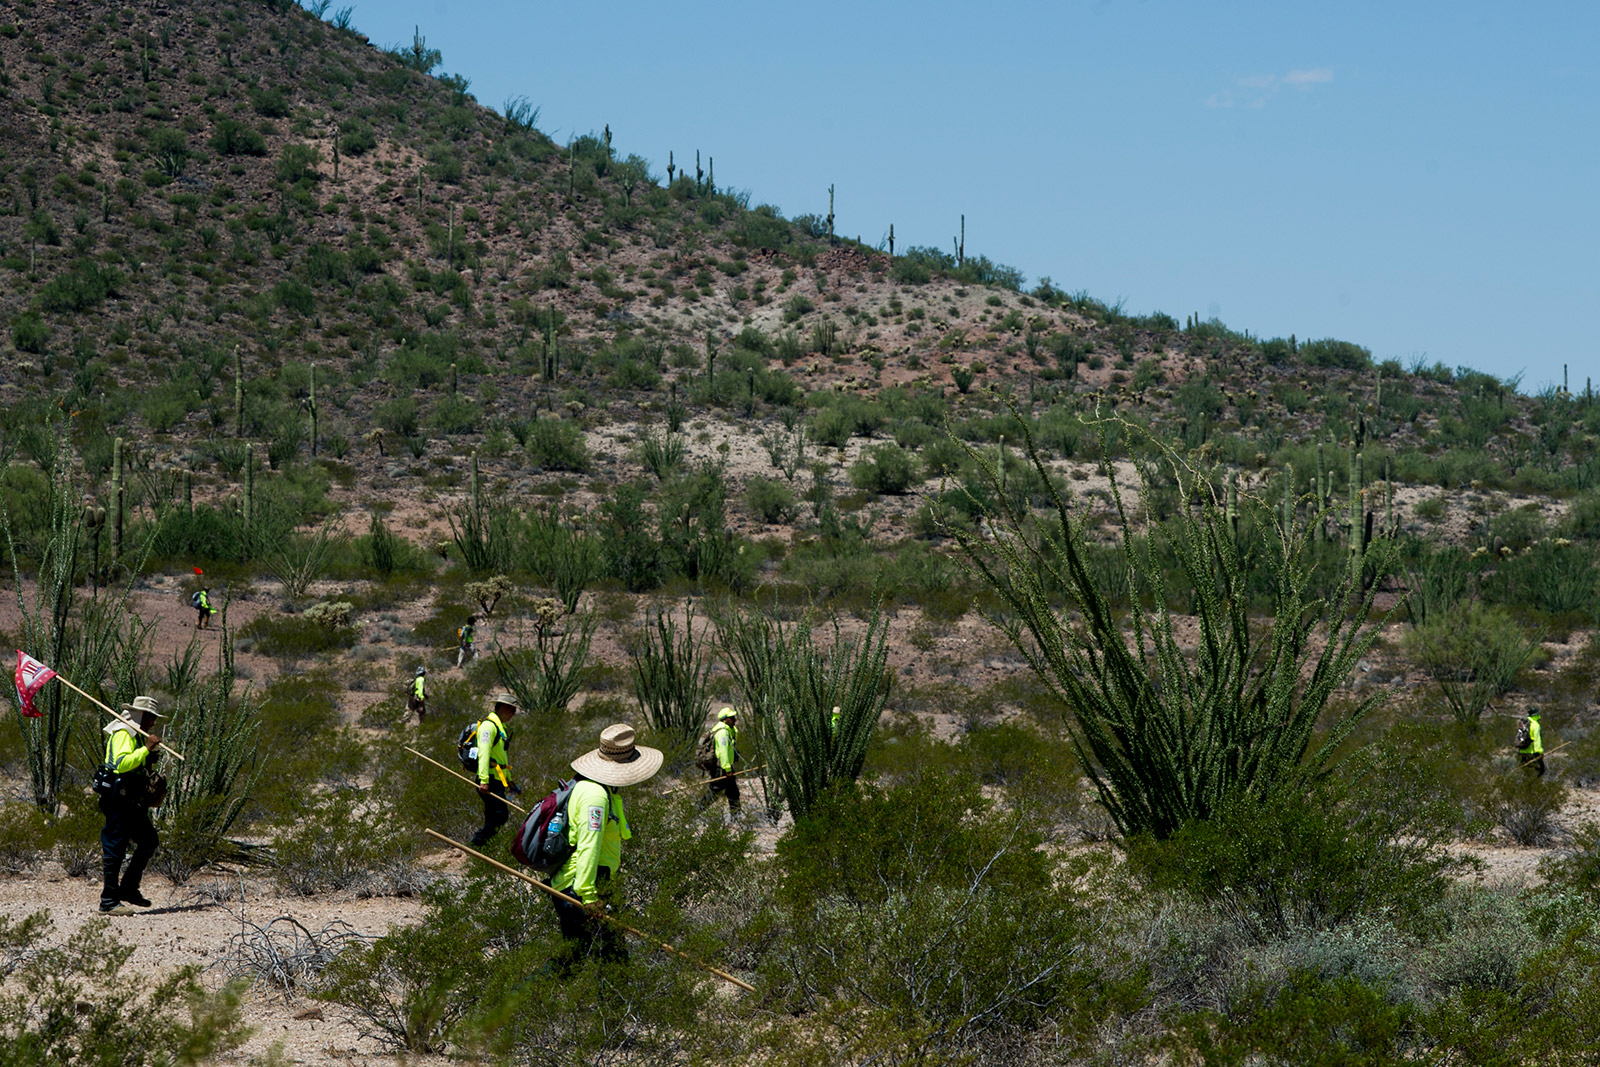 Volunteers with Aguilas Del Desierto span out across the desert along the U.S.-Mexico border in Arizona while searching for missing migrants on Aug. 26, 2017. The group, mostly from Southern California, communicate with radios while searching the last-known whereabouts of Mexican nationals attempting to enter the U.S. illegally. <em>(Brandon Quester/inewsource)</em>